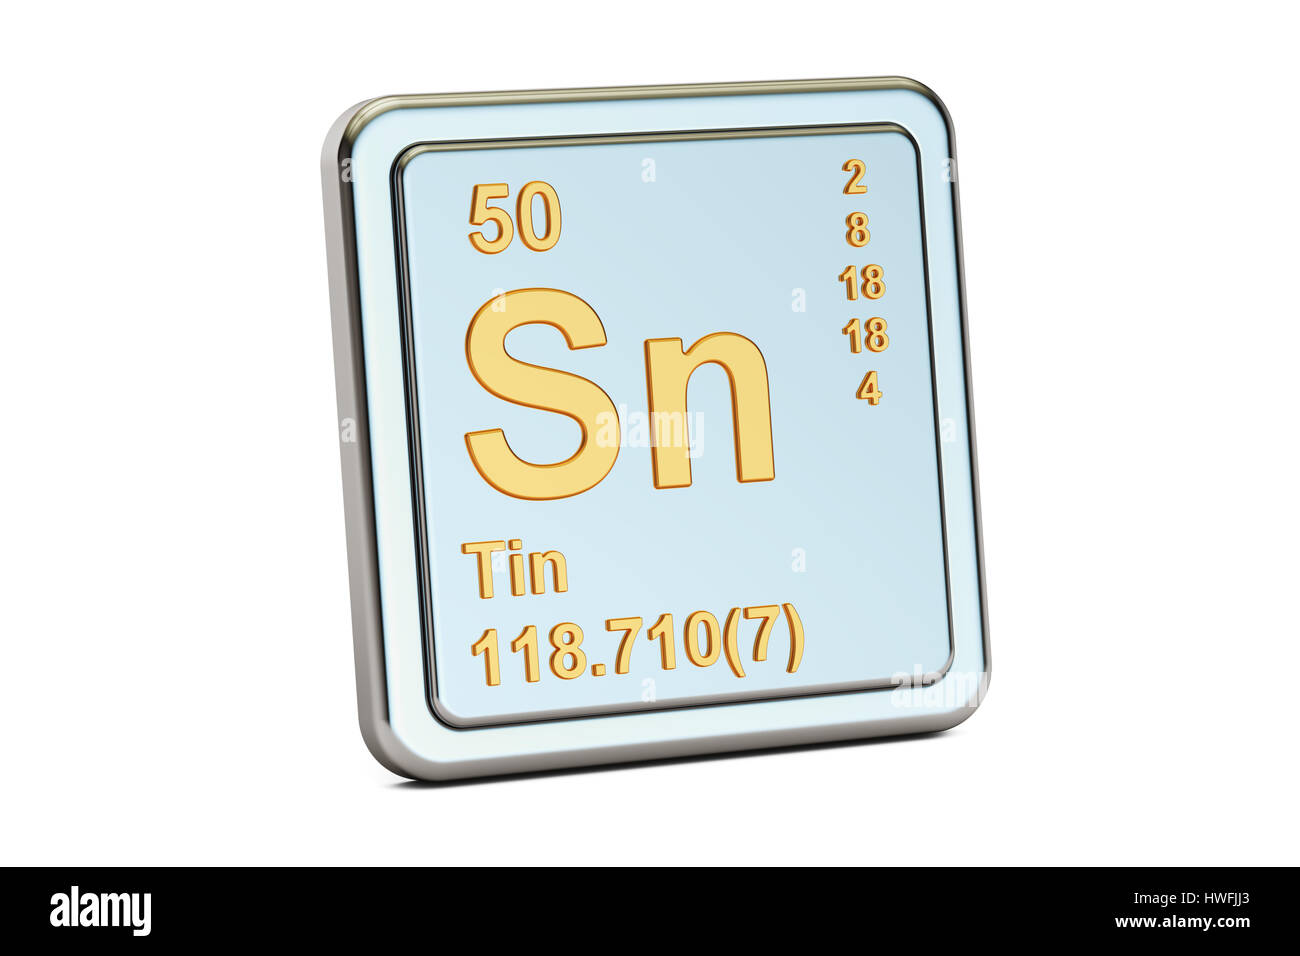 Chemical symbol sn choice image symbols and meanings chart sn symbol 50 material for tin chemical element stock photo more tin stannum sn chemical element sign 3d rendering isolated on tin chemical element periodic urtaz Images